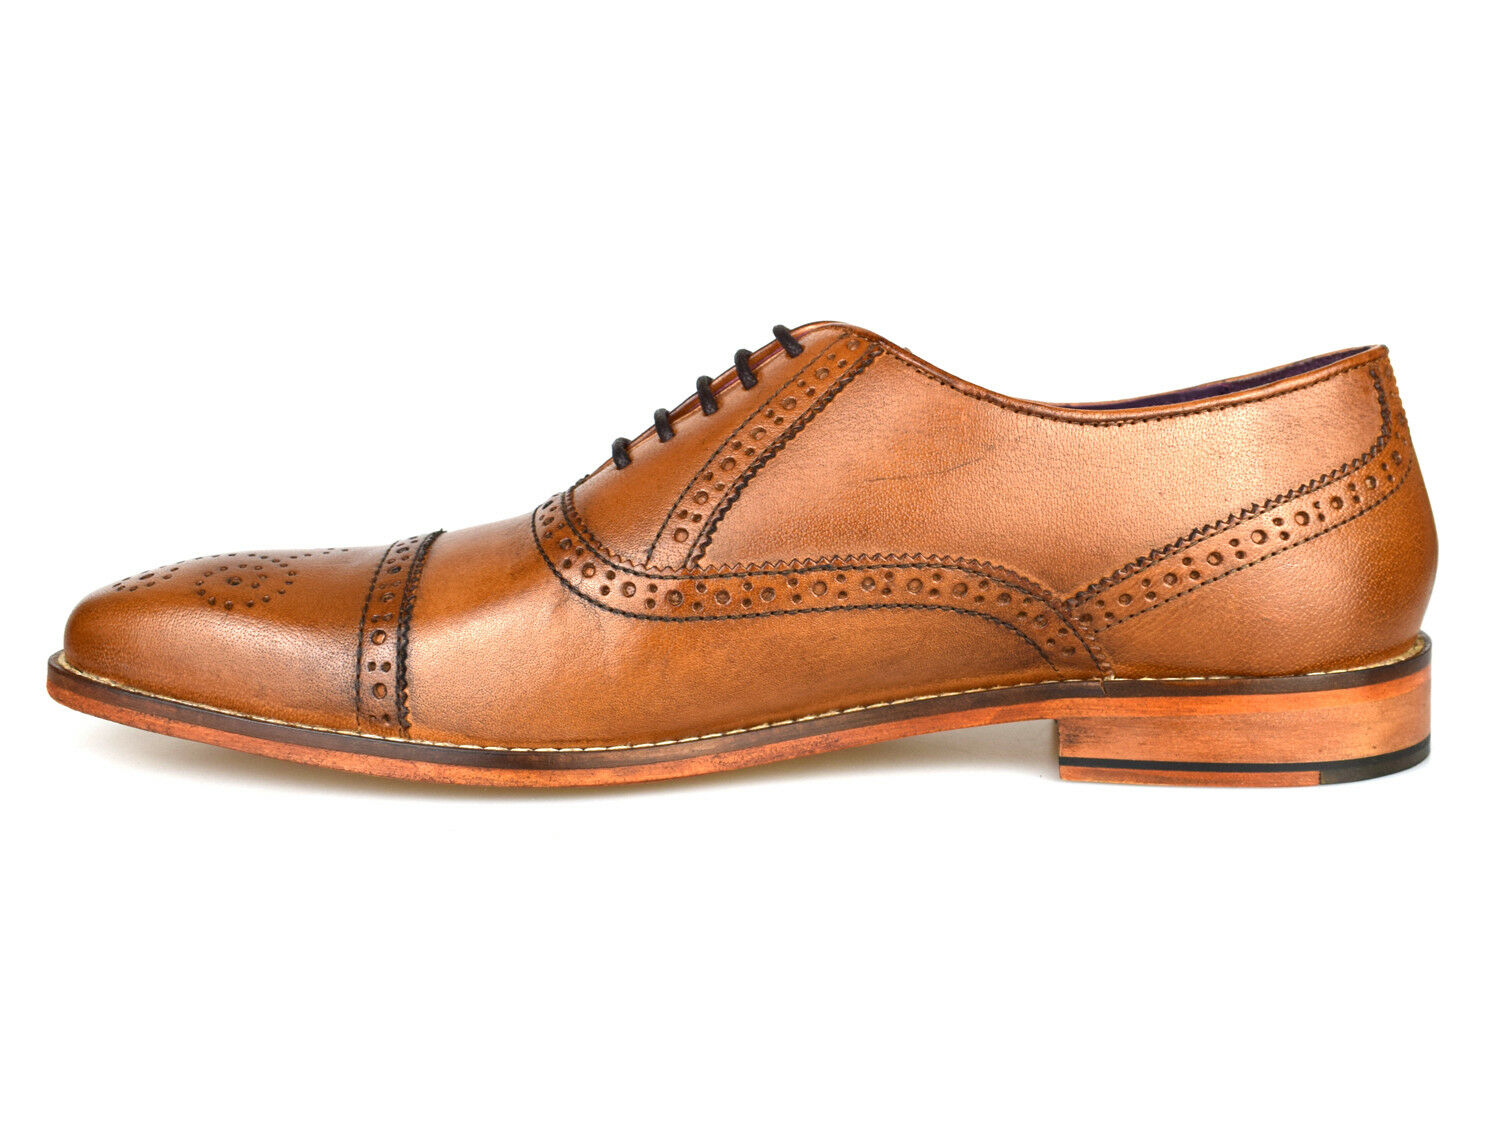 Gucinari Castello Tan Leather Formal Formal Formal Brogue Shoes AMP-008 Free UK P&P! 03fd77